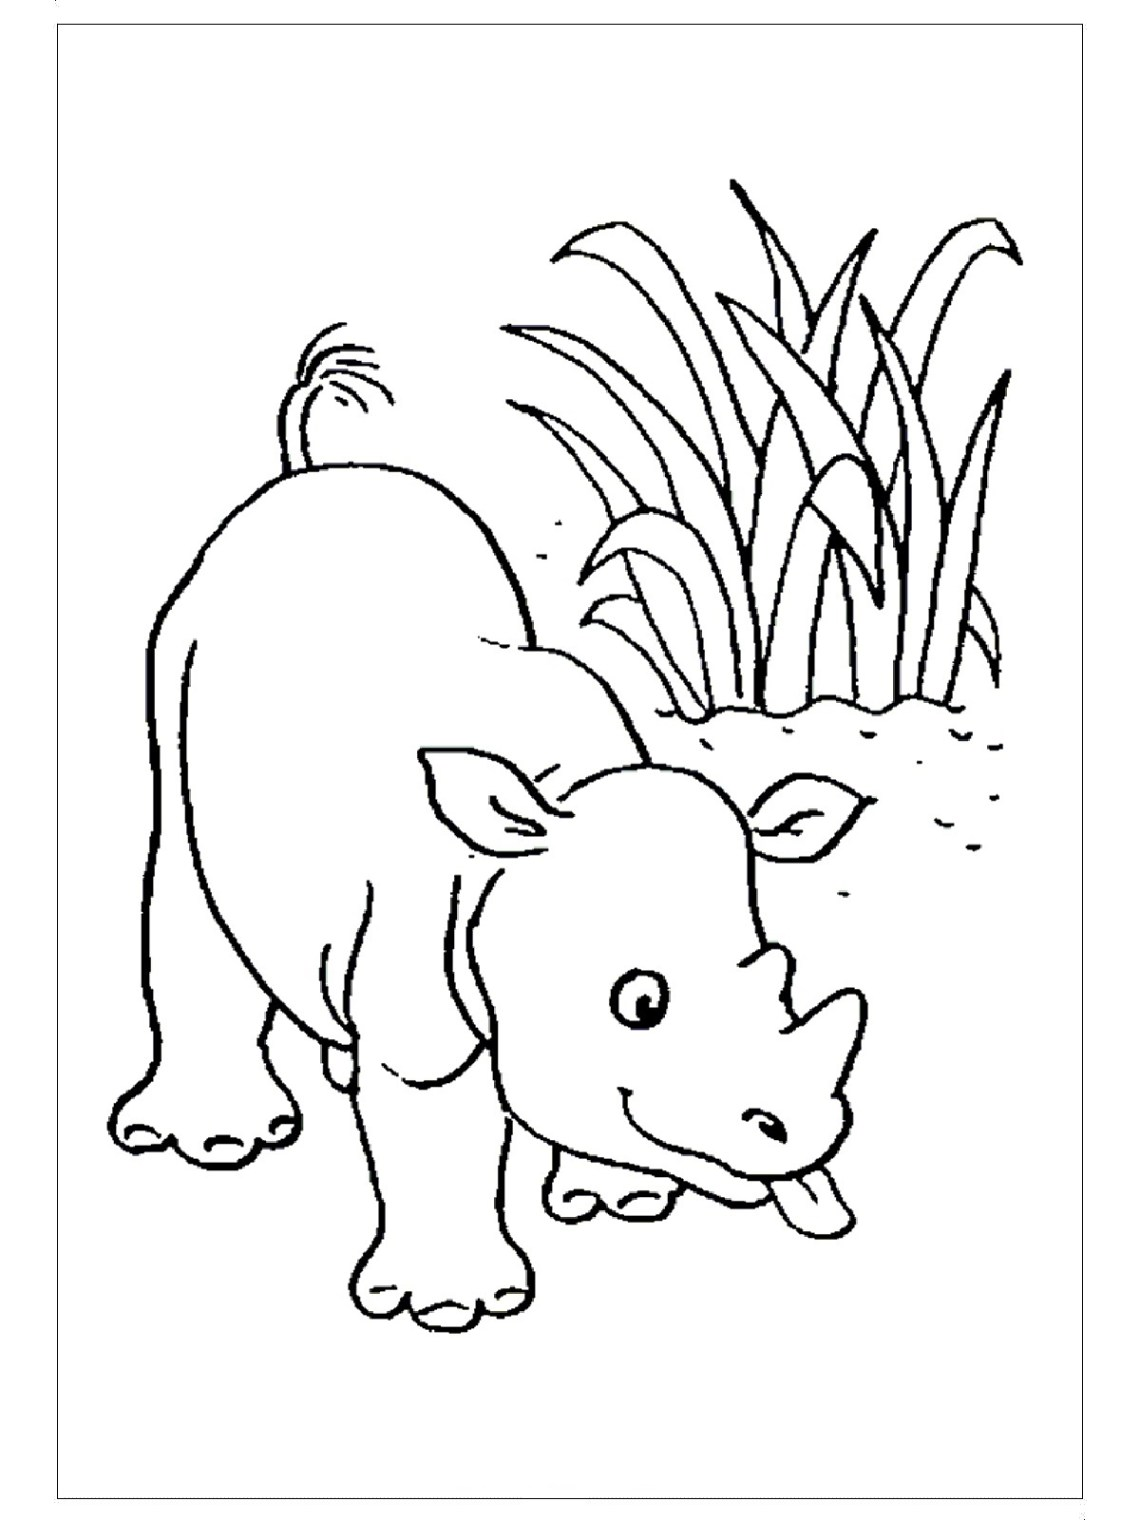 Rhino Coloring Pages for child - Preschool and Kindergarten | coloring worksheets for preschoolers